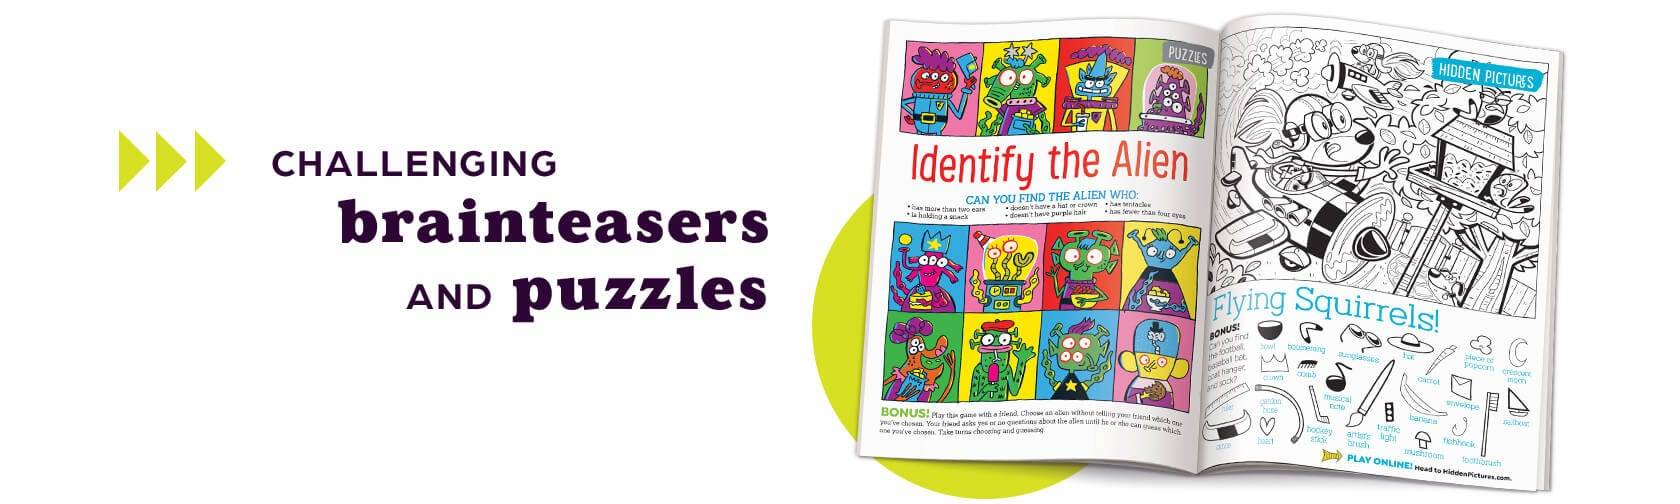 Challenging brainteasers and puzzles